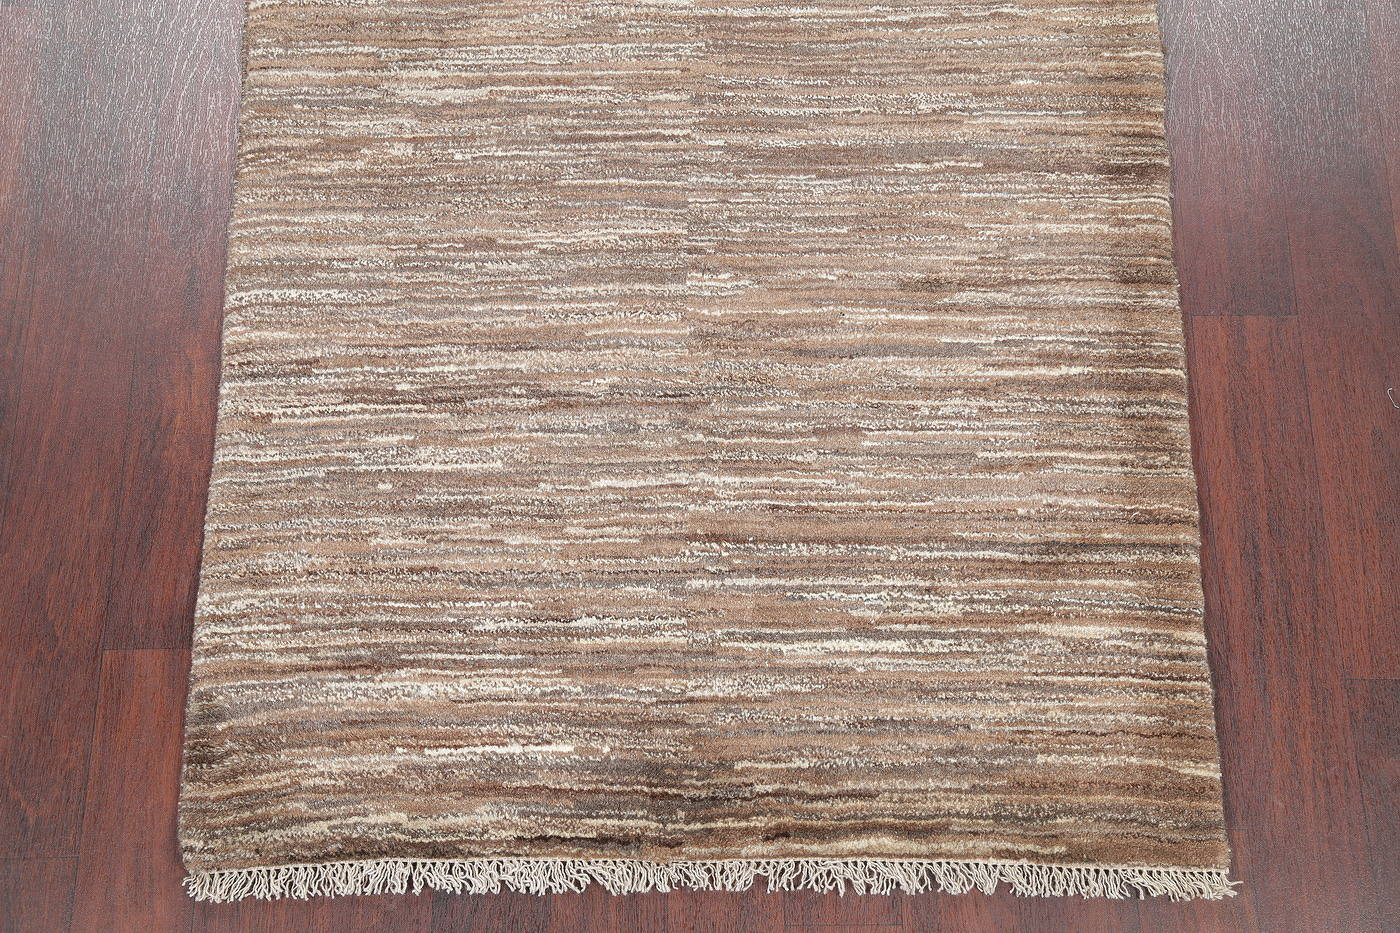 Hand-Knotted Brown Contemporary Gabbeh Shiraz Persian Area Wool Rug 4x5